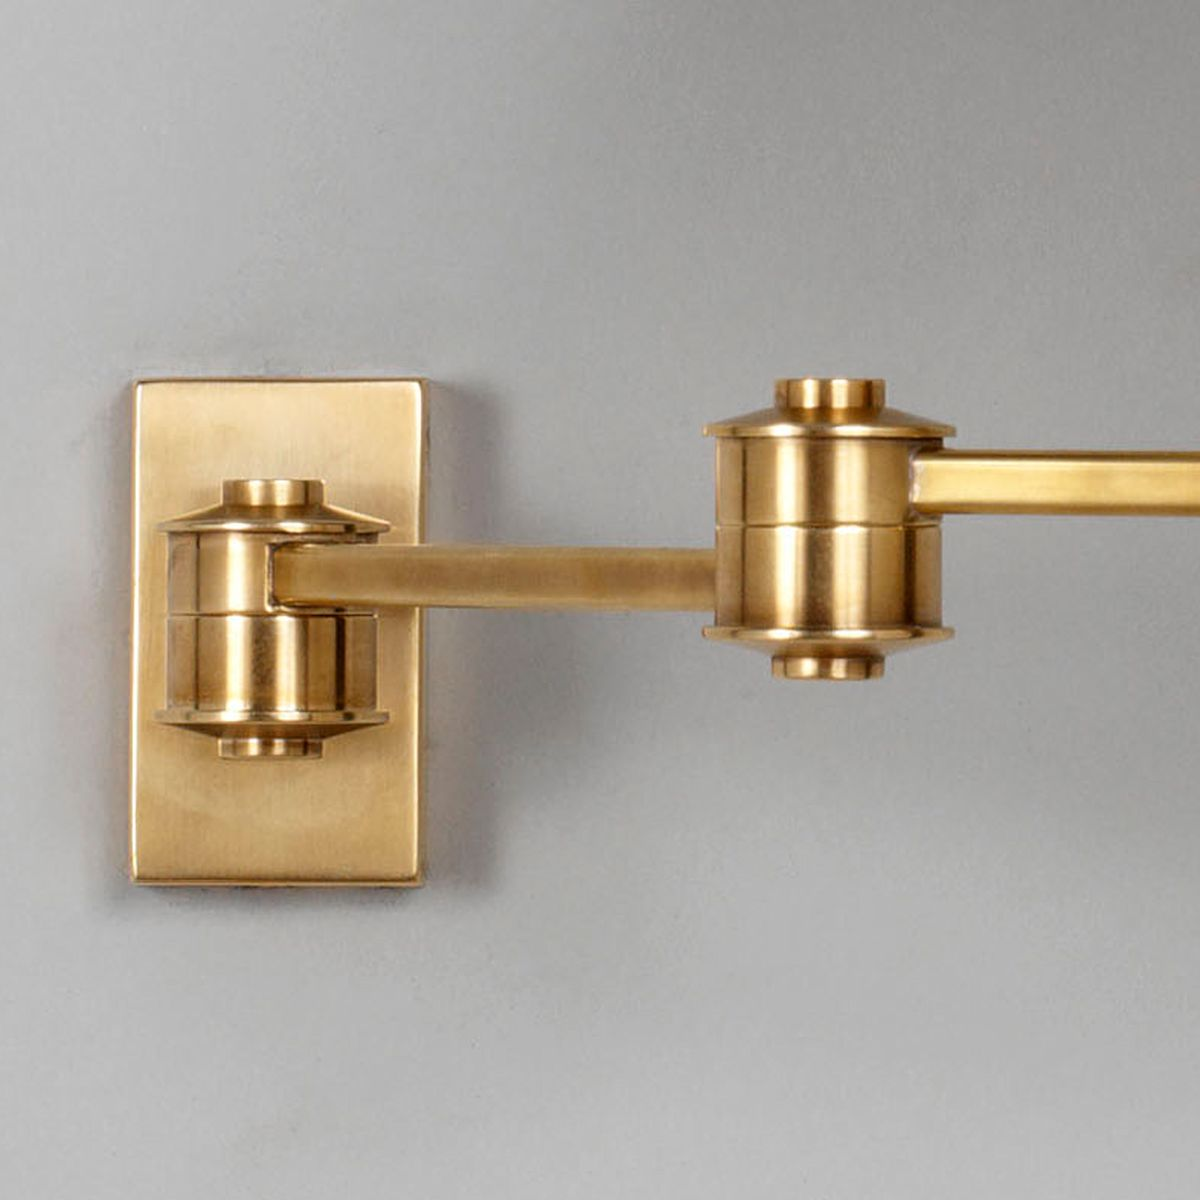 Library Swing Arm Wall Light - Brass